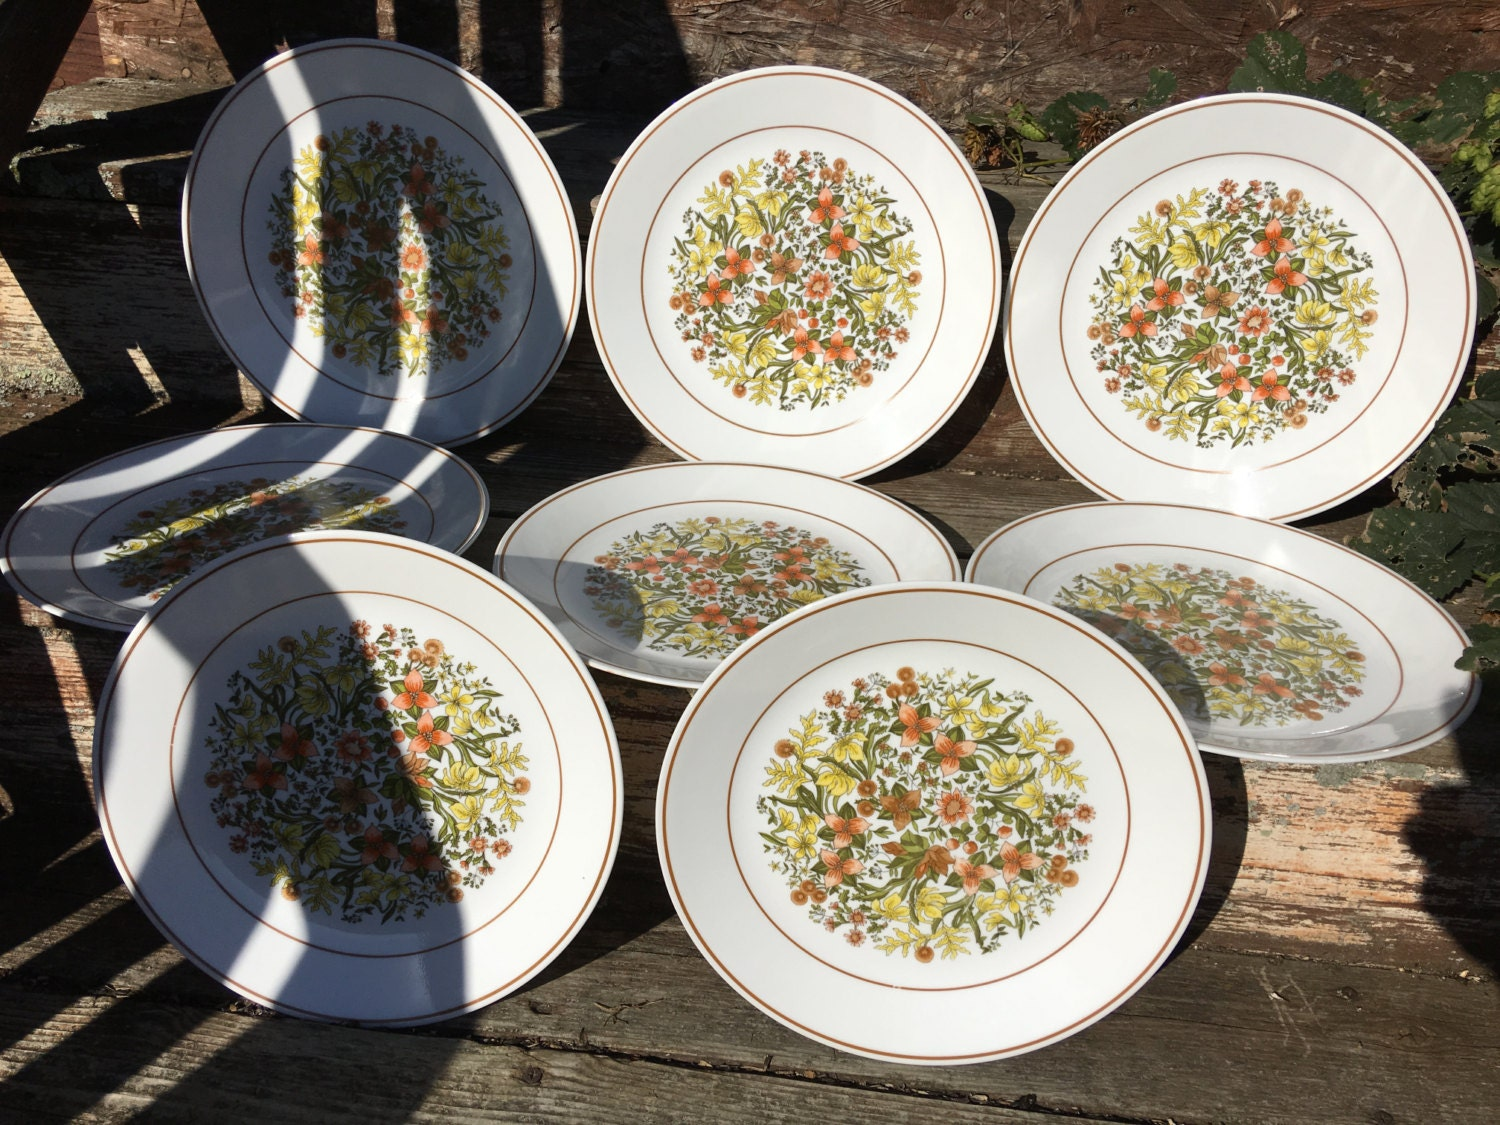 Set of 8 Vintage Corelle Indian Summer Pattern Dinner Plates Fall Colors Autumn Orange Green Brown Yellow Leaves and Flowers Replacement Set & Set of 8 Vintage Corelle Indian Summer Pattern Dinner Plates Fall ...